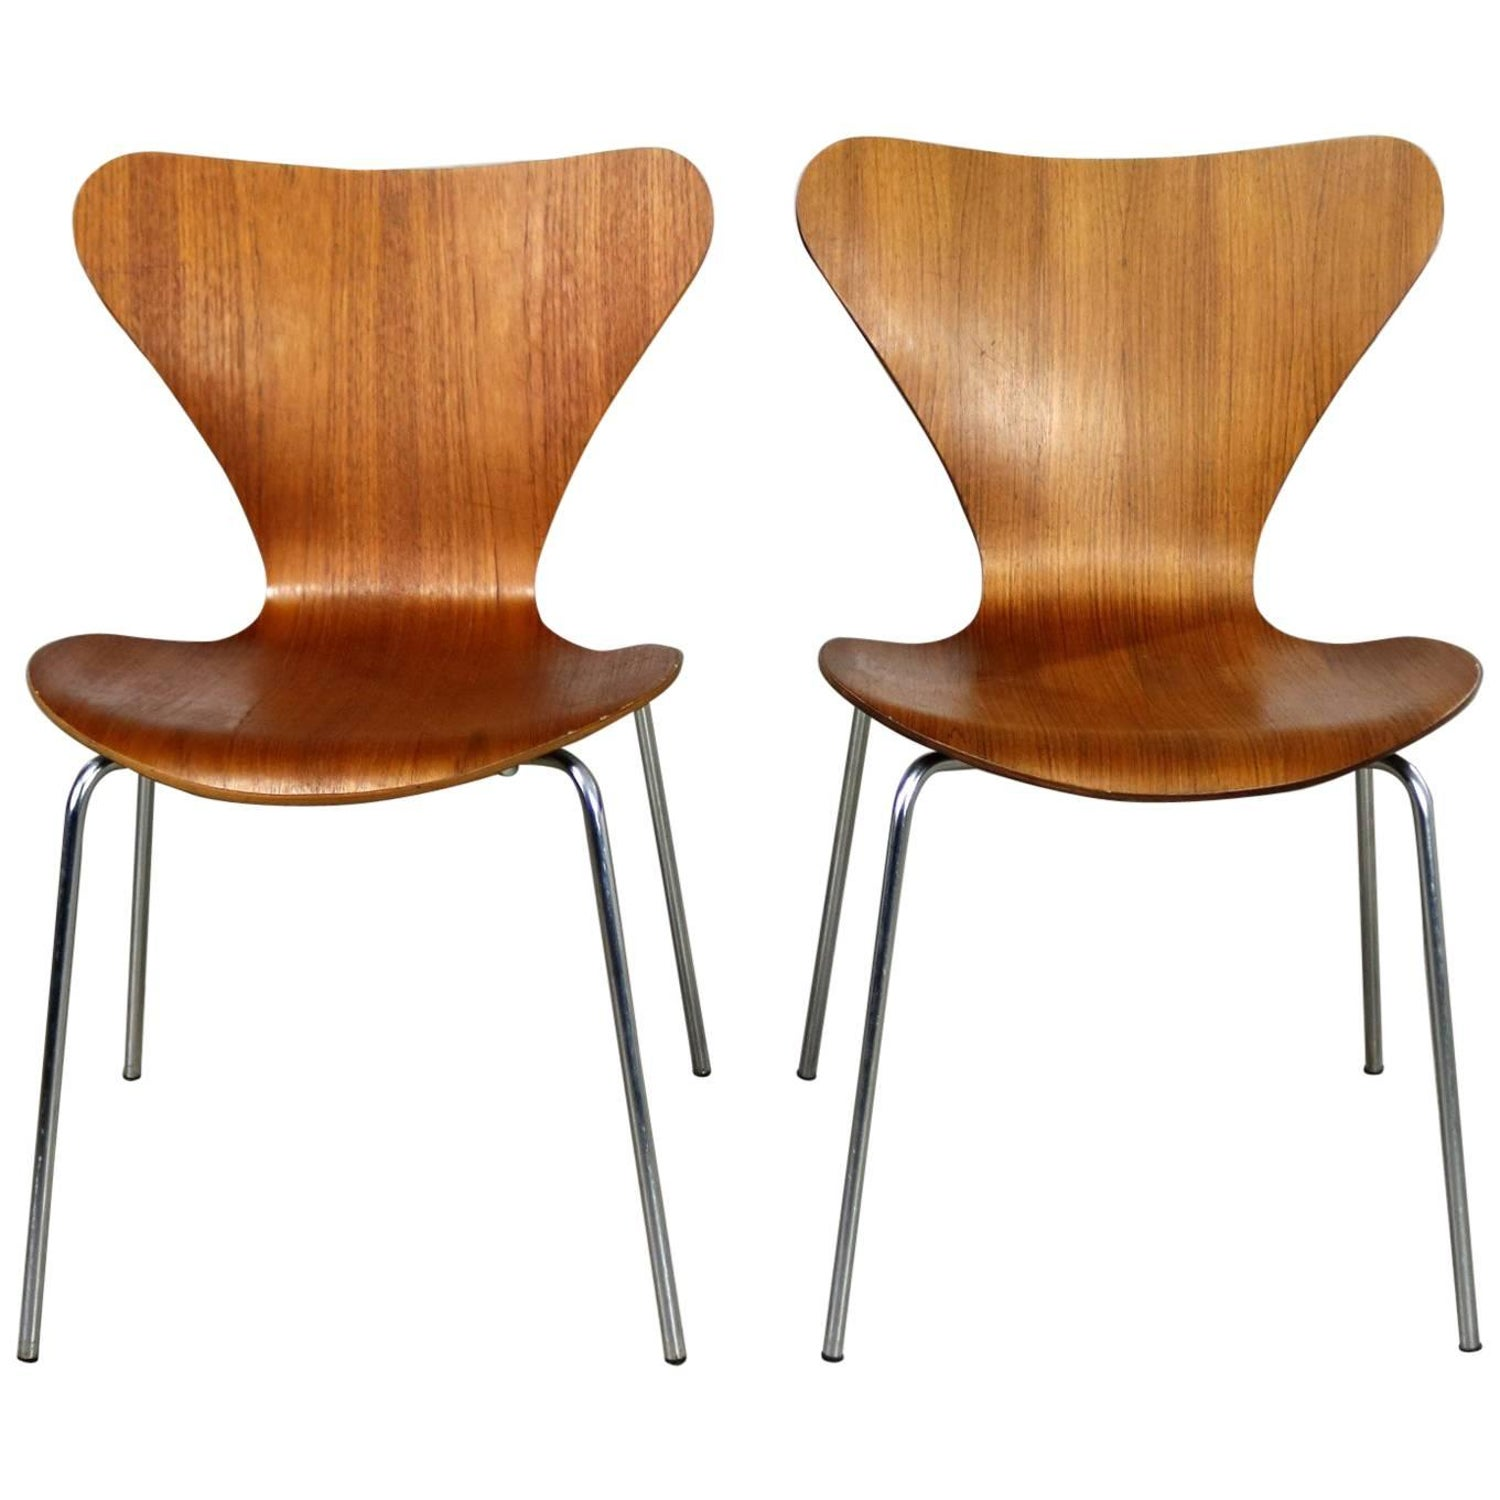 Sedie Serie 7 Fritz Hansen.Series 7 Chairs By Arne Jacobsen For Fritz Hansen Vintage Mcm Molded